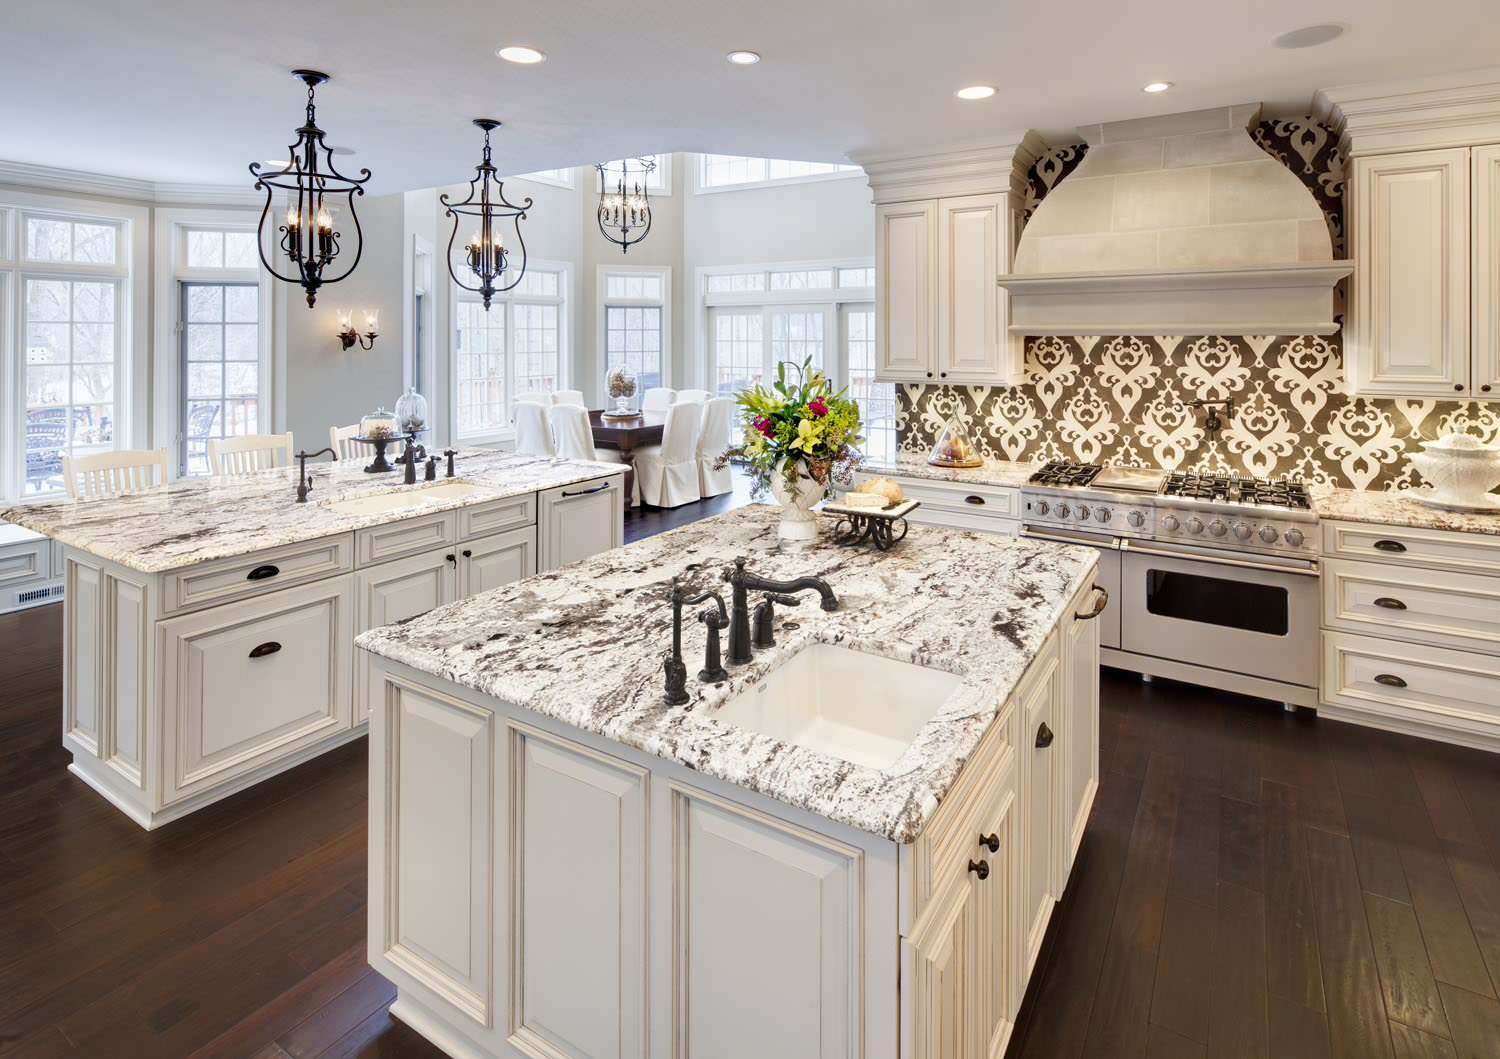 White Cabinets with Wood Floors Traditional Kitchen Accent Tiles Ceiling Lighting Breakfast Bar Granite Countertops